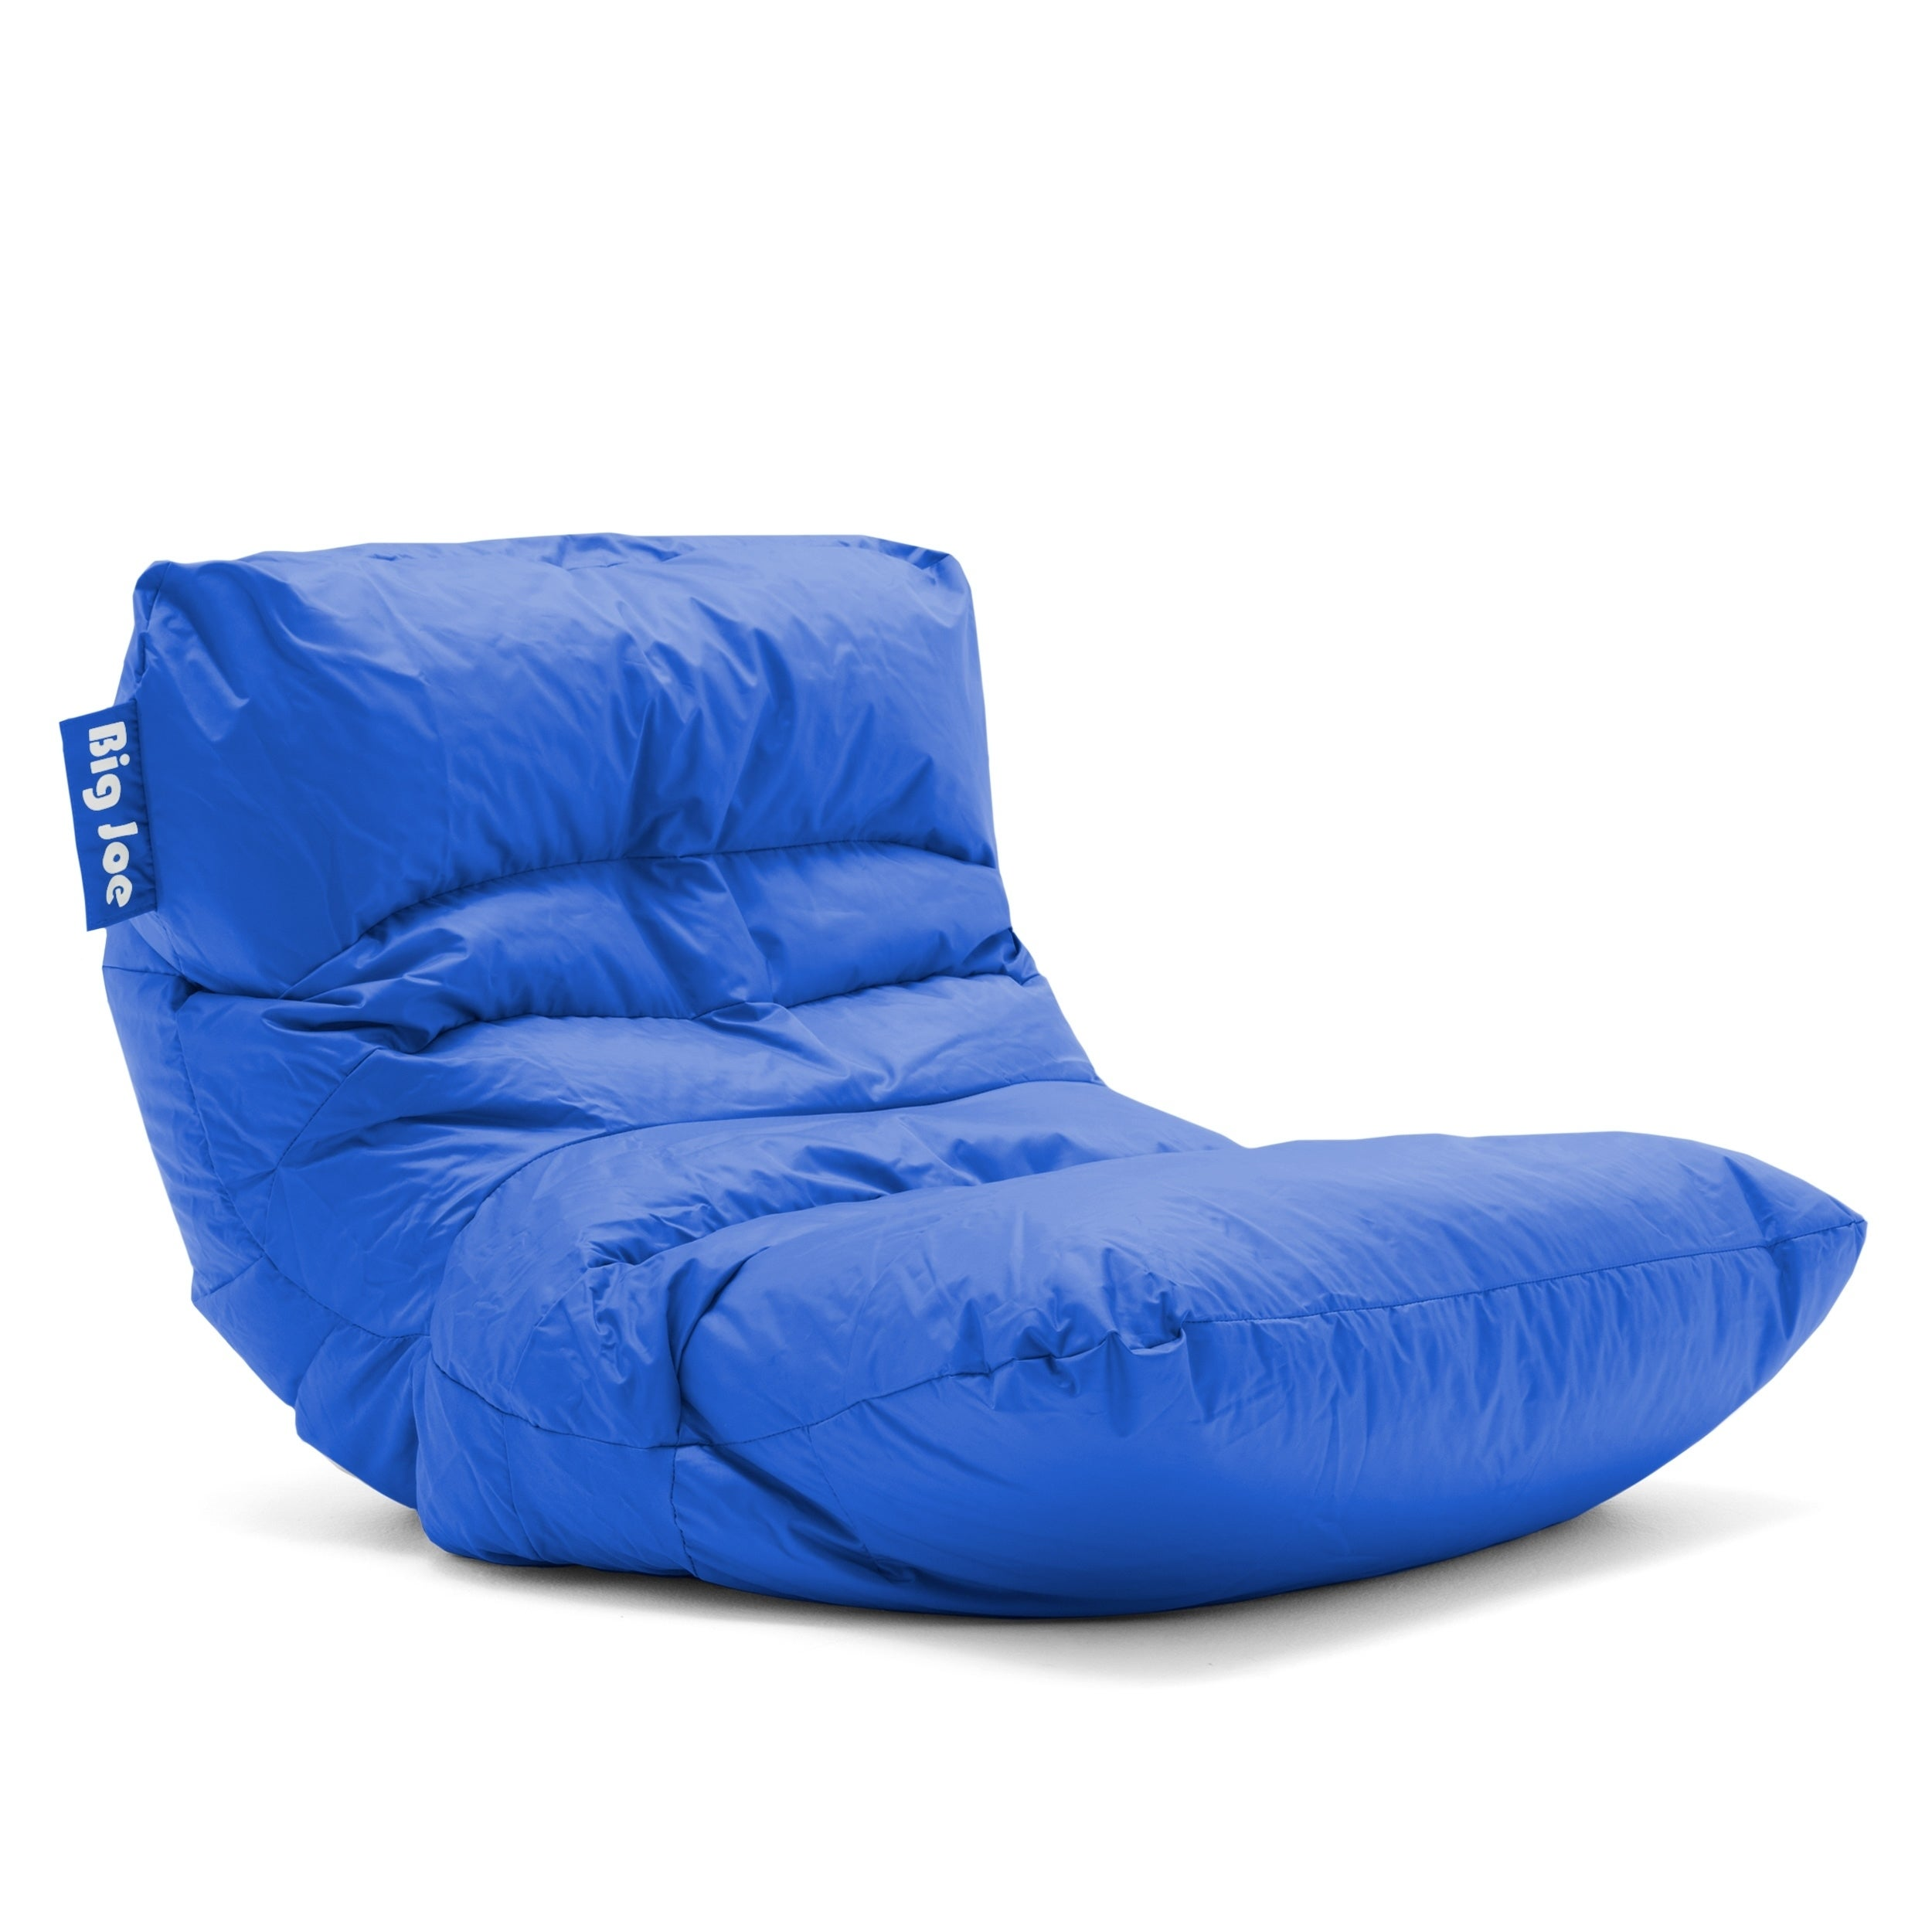 Charmant Shop Big Joe Roma Bean Bag Chair, SmartMax   Free Shipping Today    Overstock.com   16257655